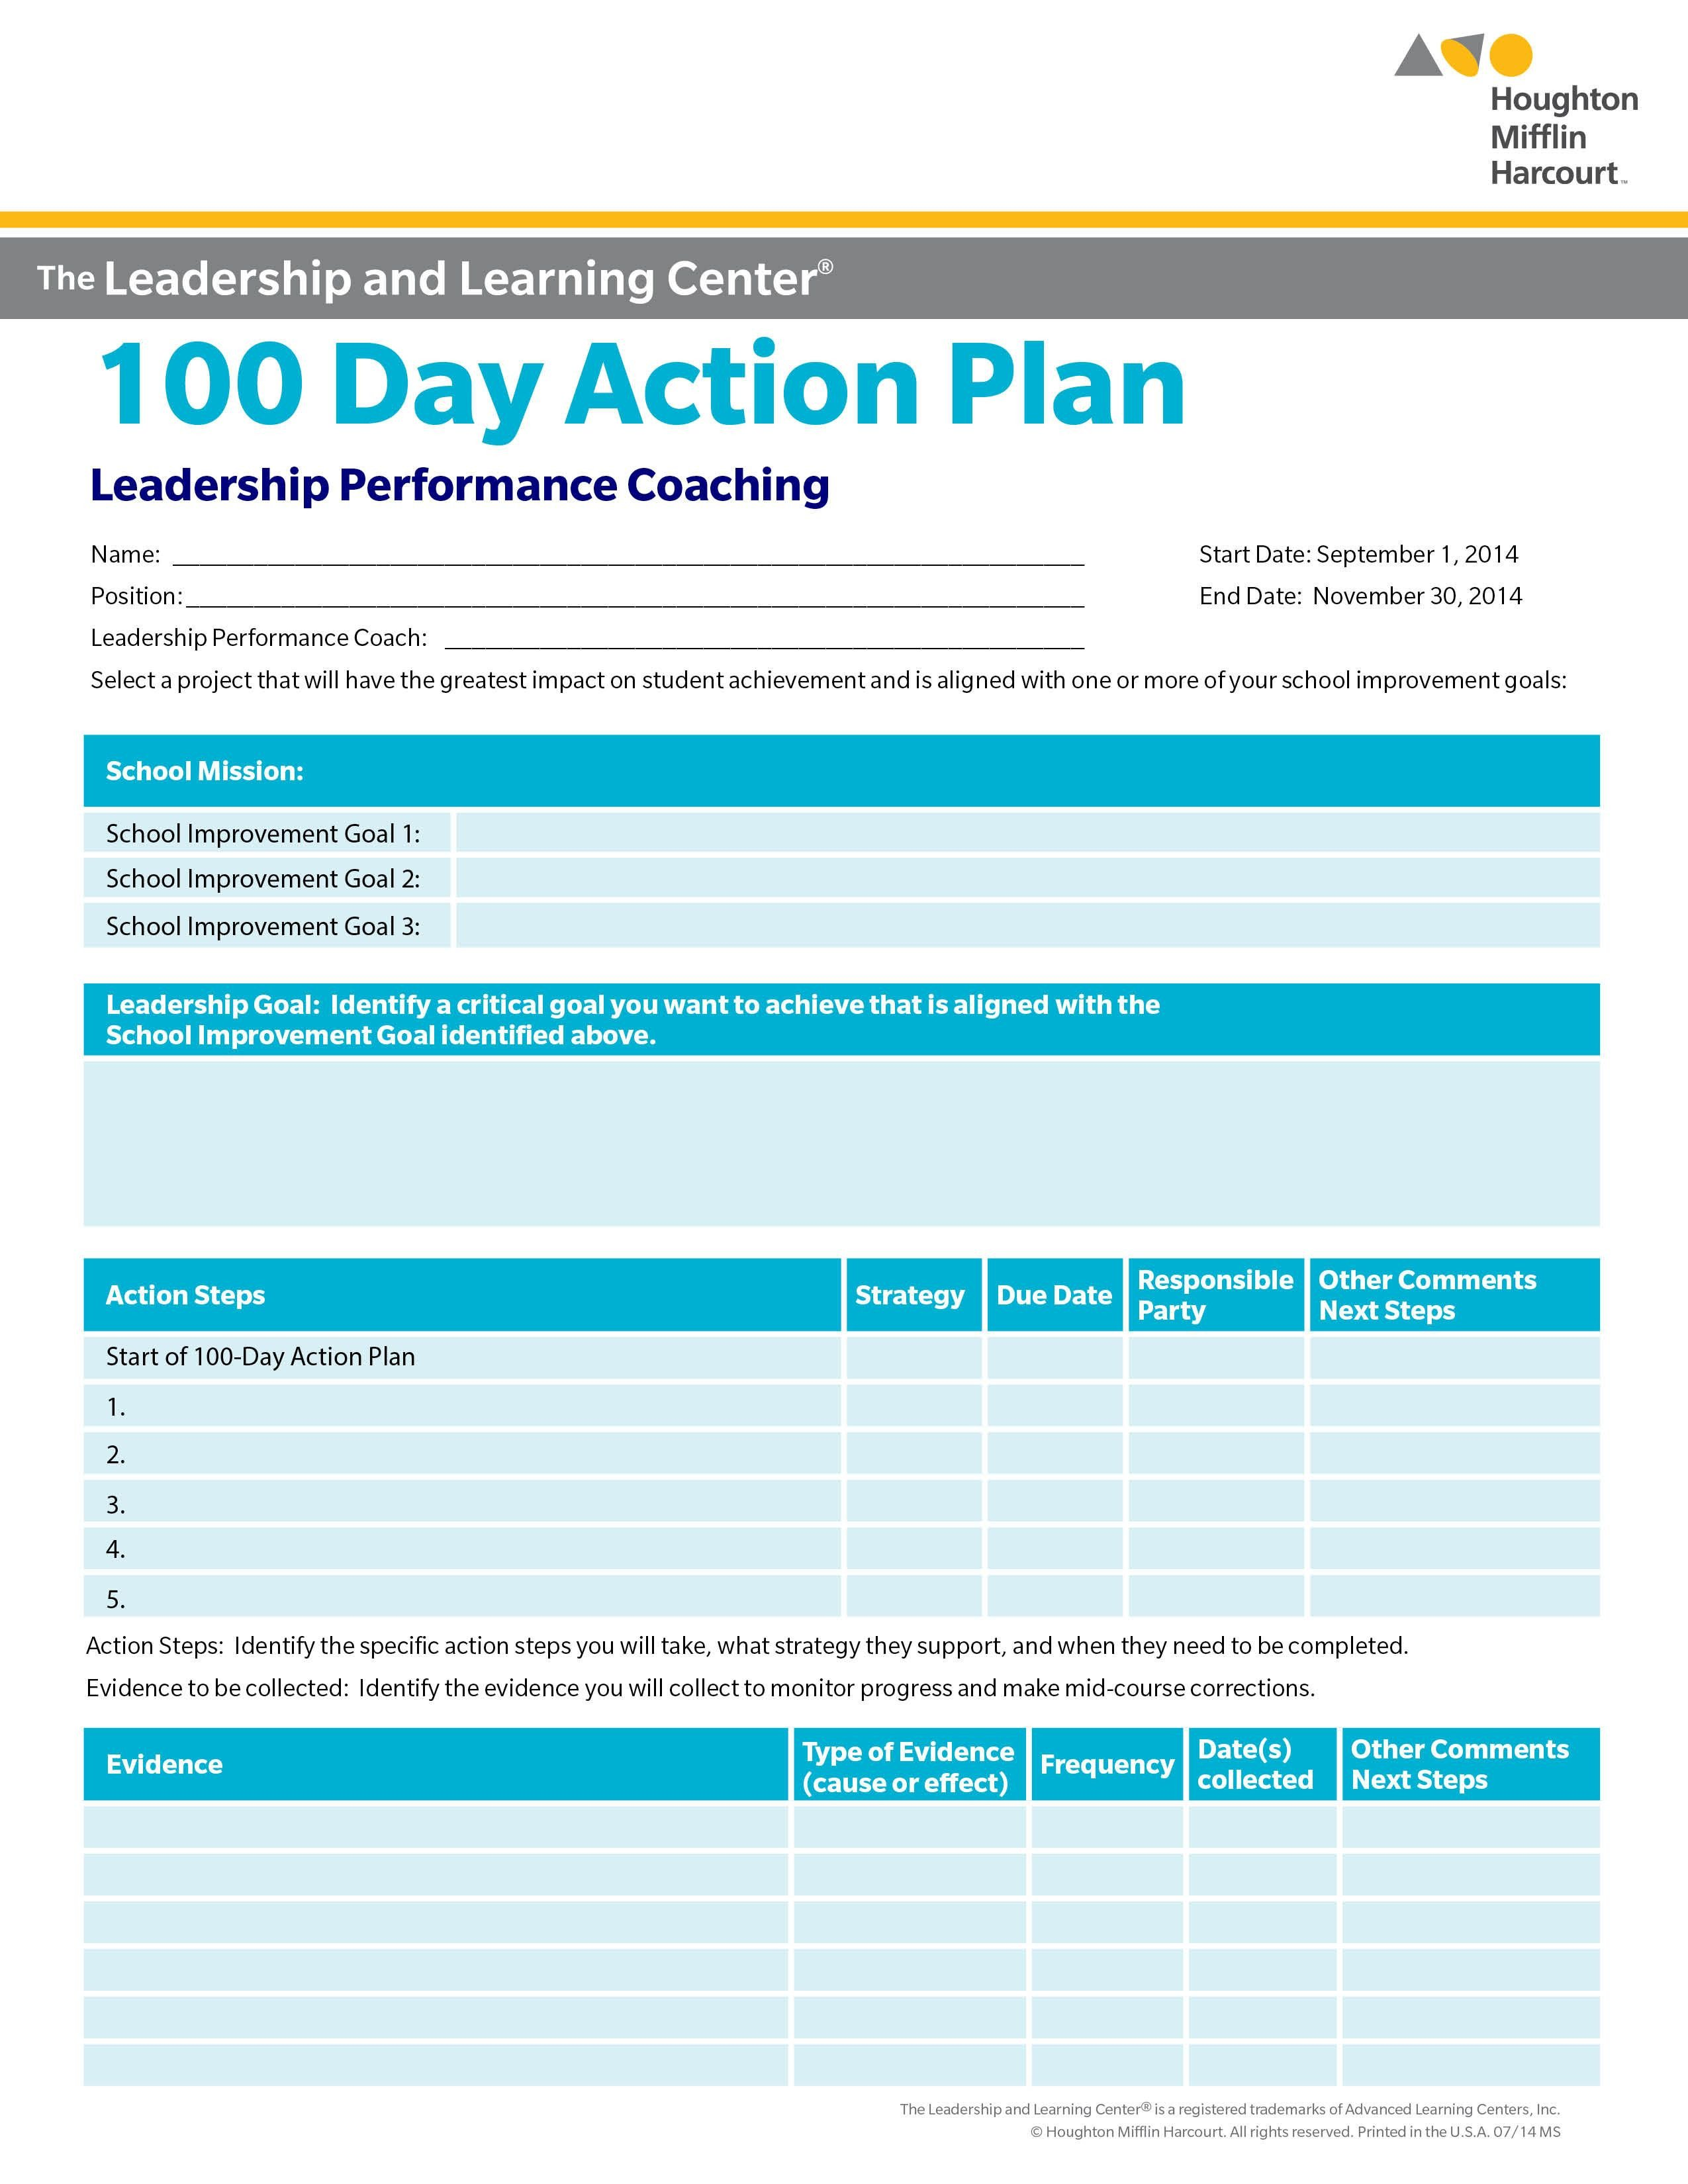 100 Day Planning Template School Improvement 100 Day Action Plan Select A Goal for